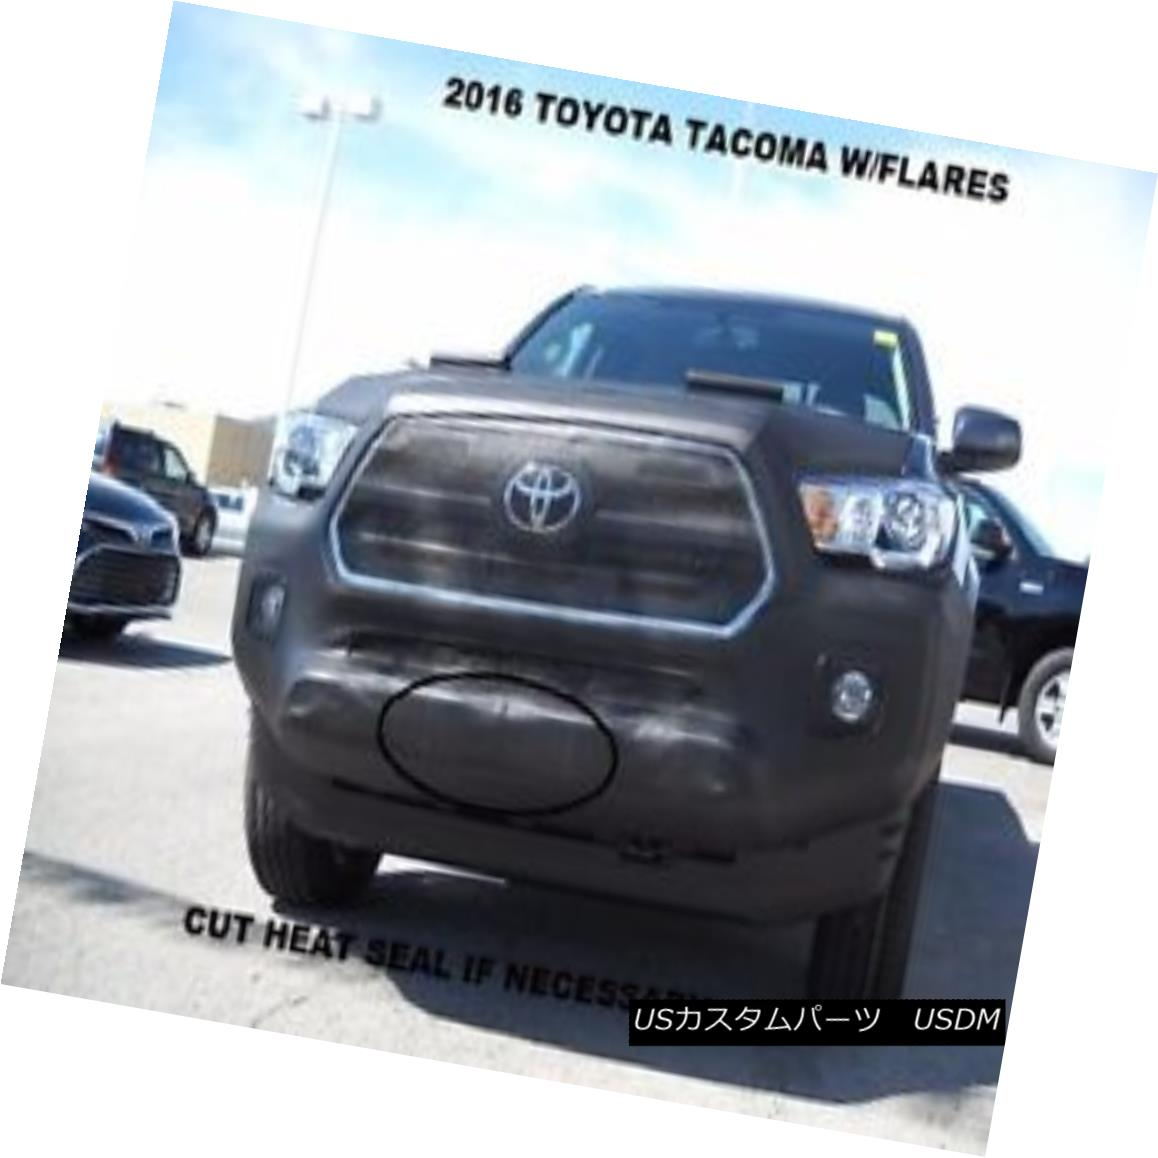 End Lebra Lebraフロントエンドマスクカバーブラは2016-2018に合っていますTOYOTA Mask 16-18 2016-2018 Fits 16-18 Flares TOYOTA Flares Bra Tacoma With Tacoma With フルブラ ノーズブラ Front Cover